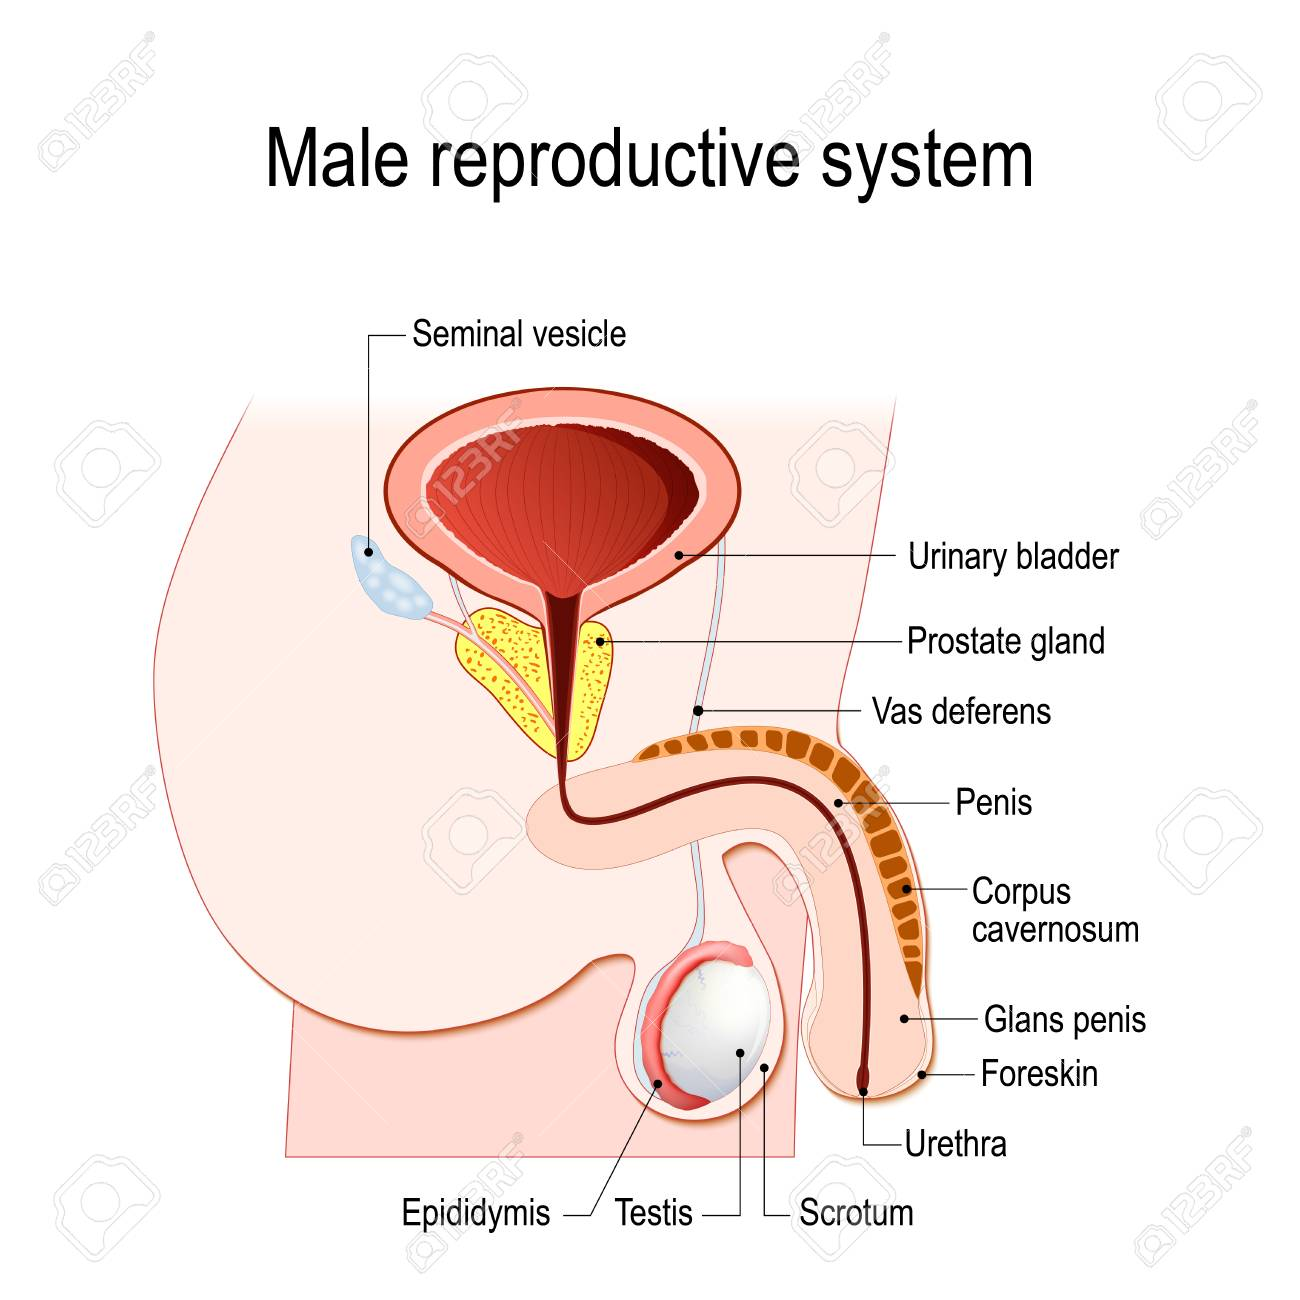 male reproductive system (seminal vesicle, vas deferens, prostate gland,  testicles and epididymis